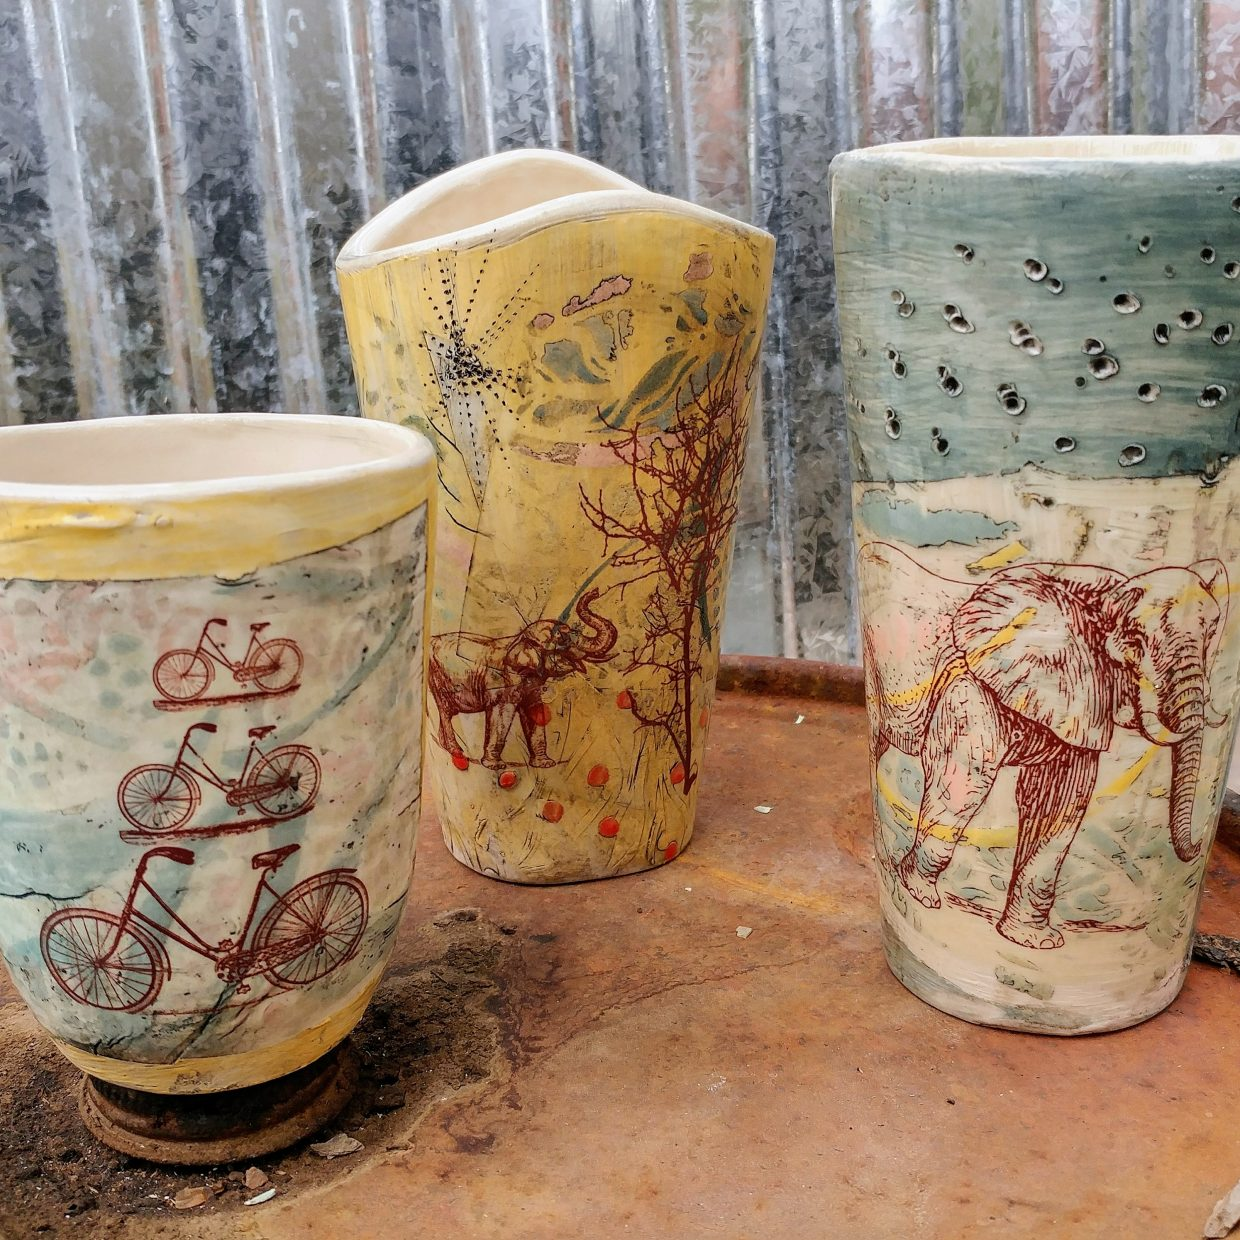 Based out of Oak Creek, Sherry Murphy Ceramics will be a vendor at the Steamboat Springs Farmers Market again this year.